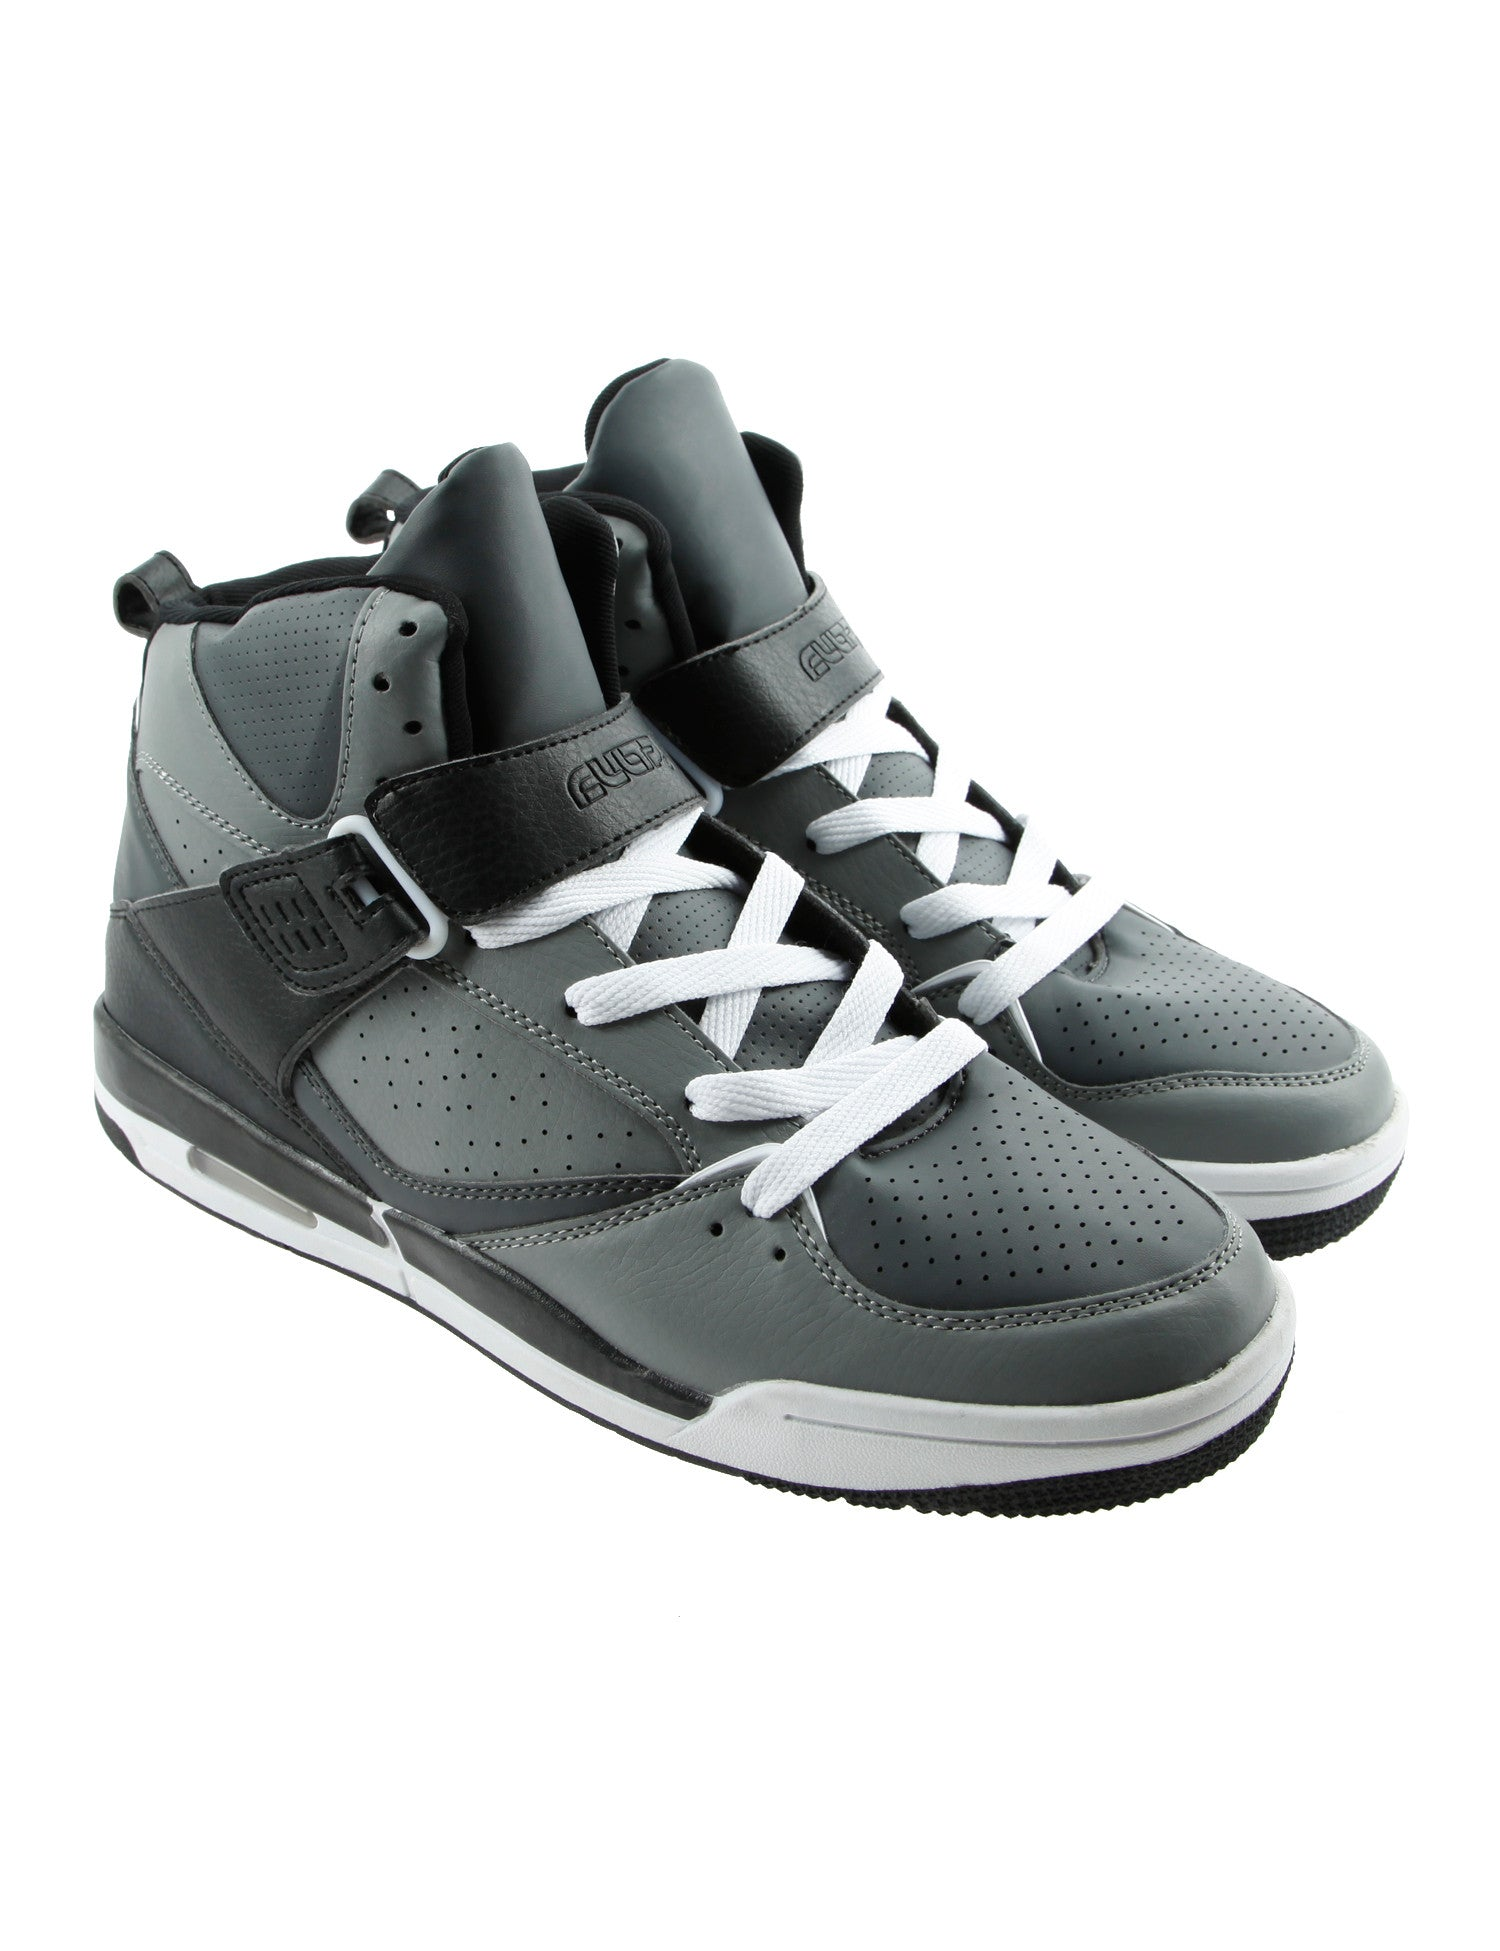 Cultz 150413-HM Shoes  Grey